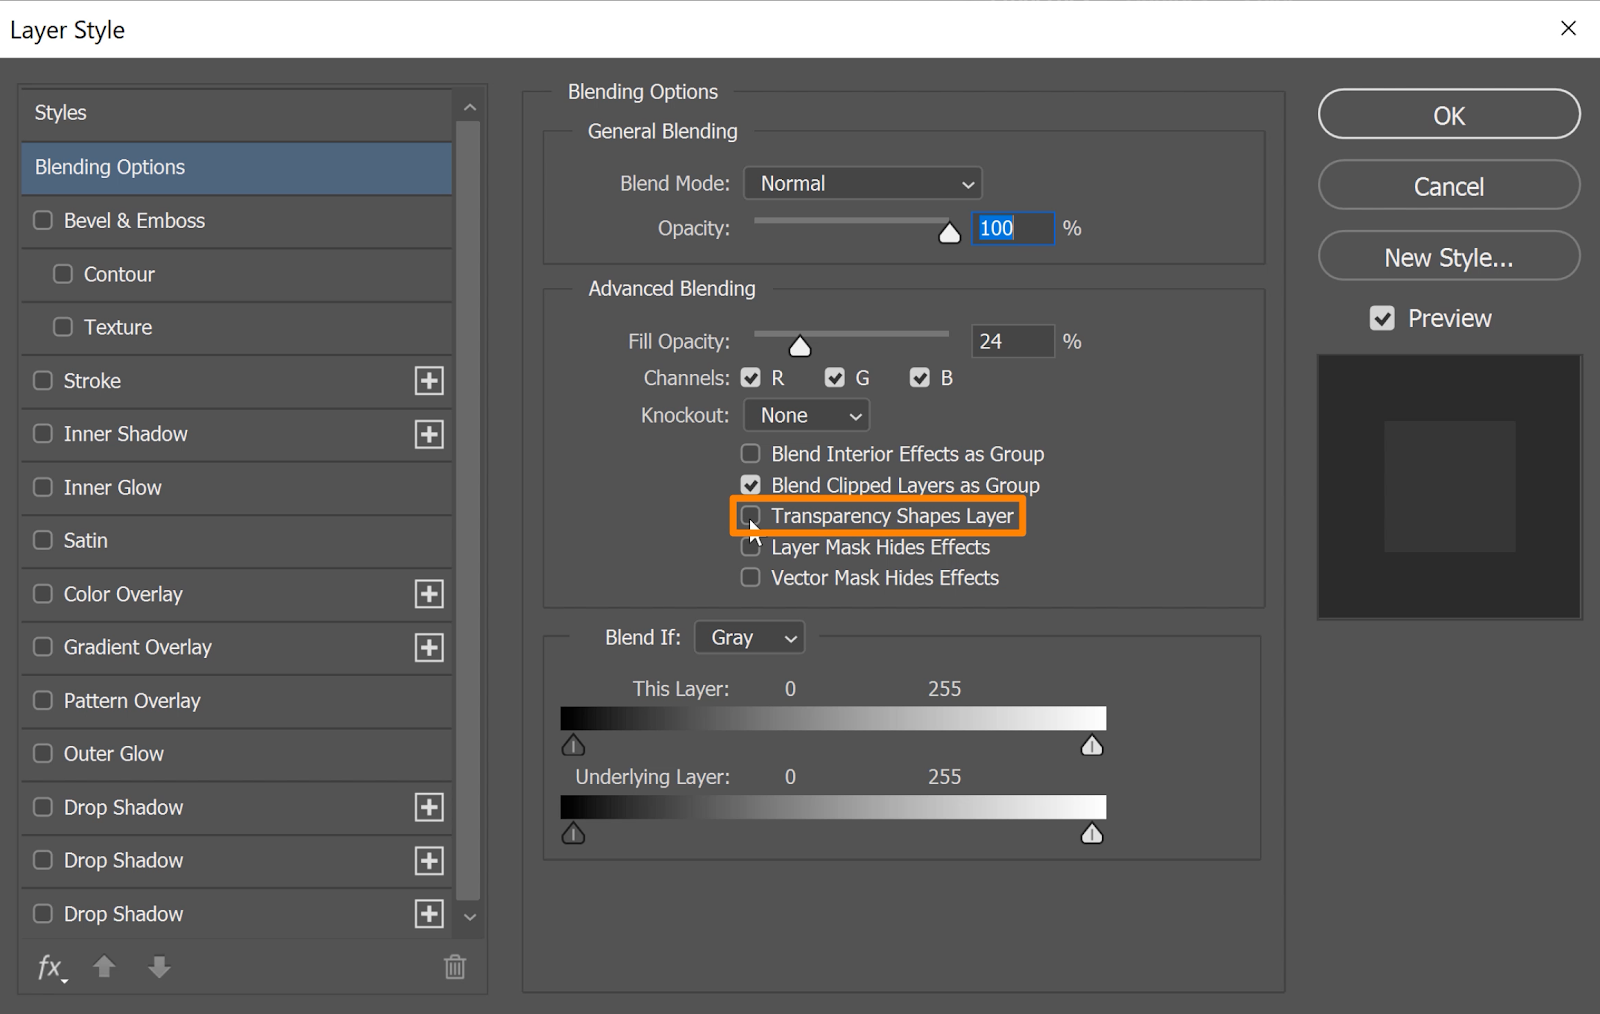 Under Advanced Blending, check the box for Transparency Shapes Layer